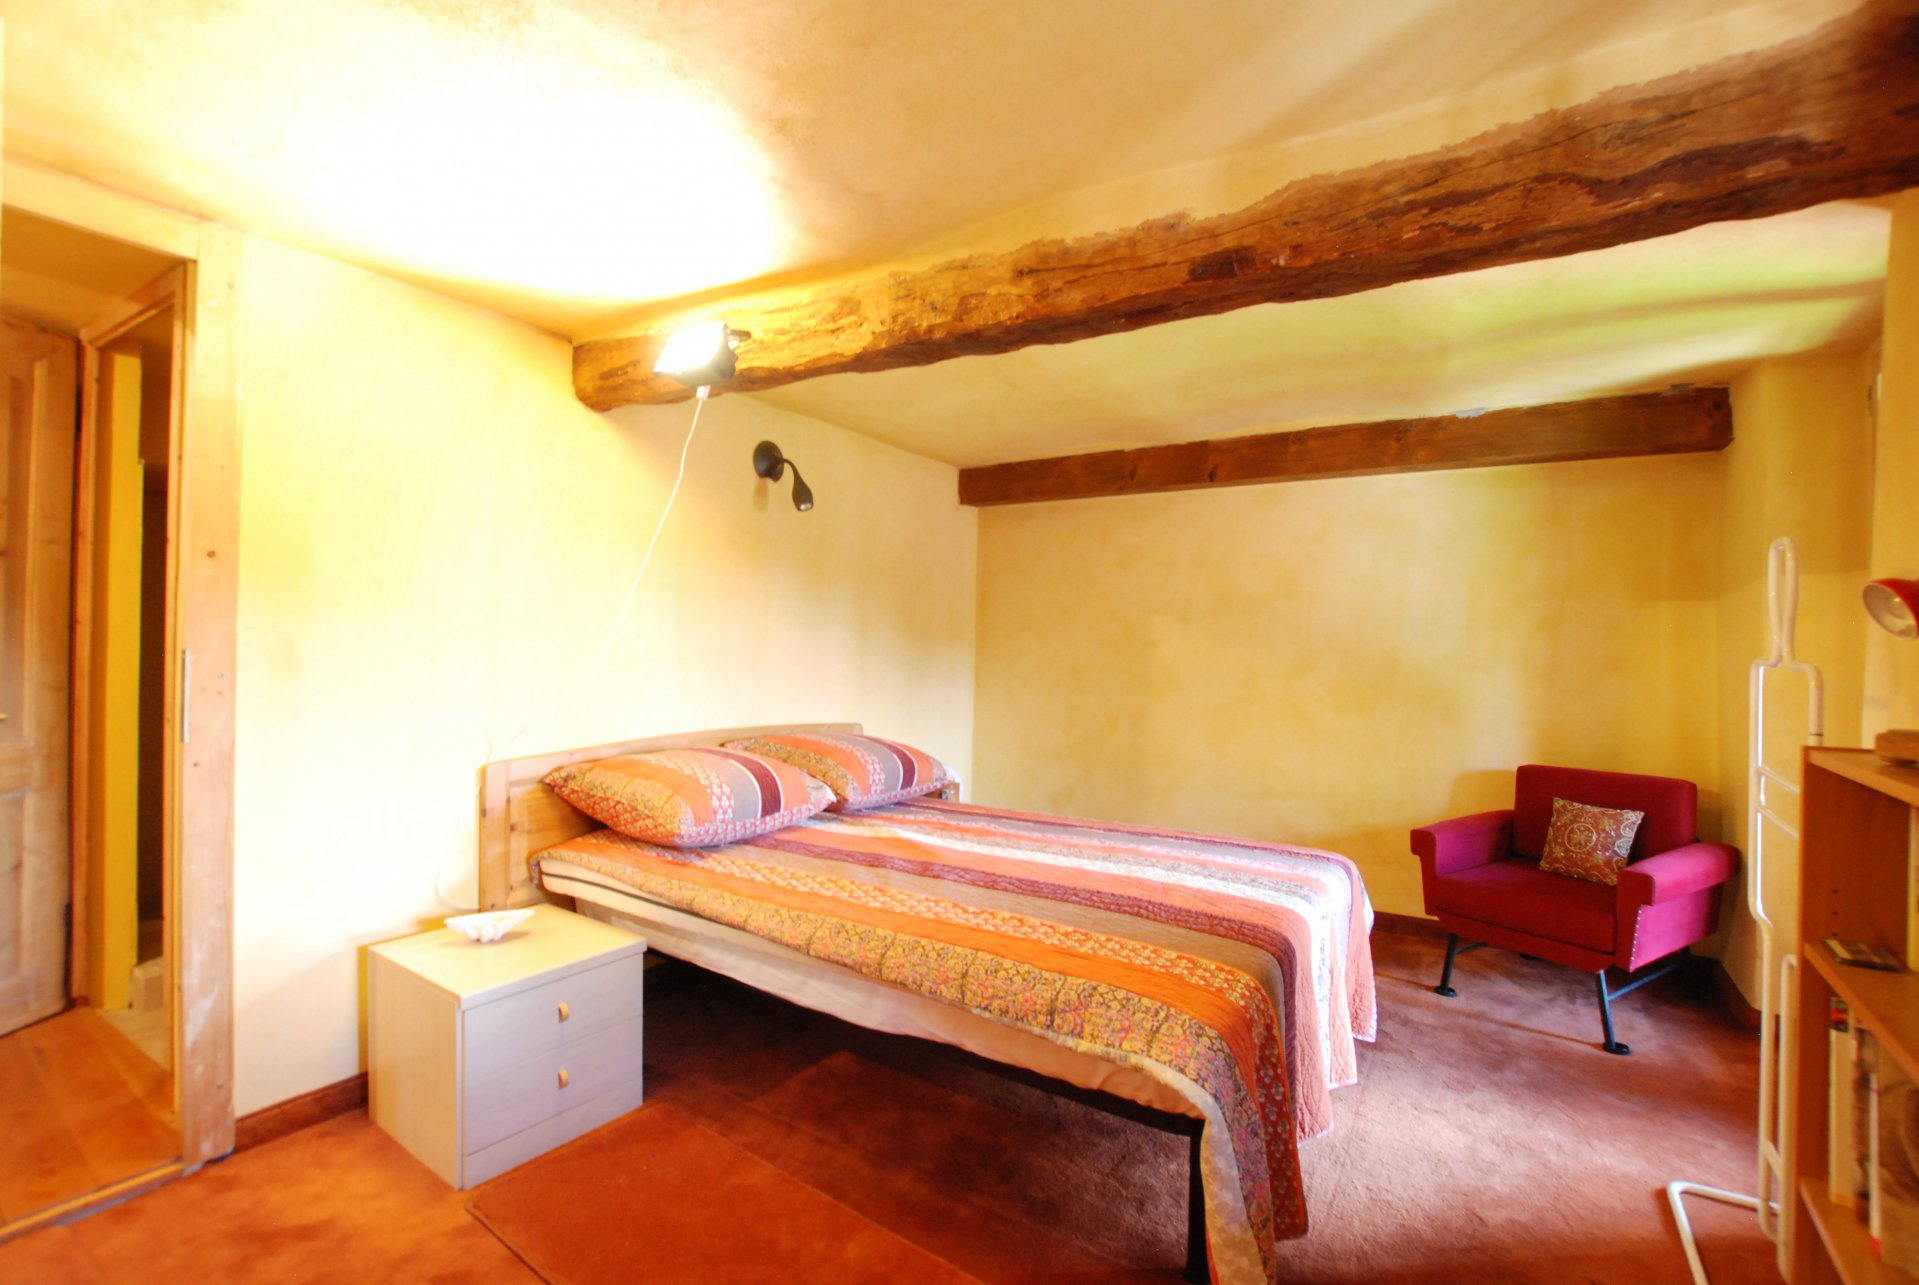 Trait house of land for sale in Paruzzaro- bedroom with beam